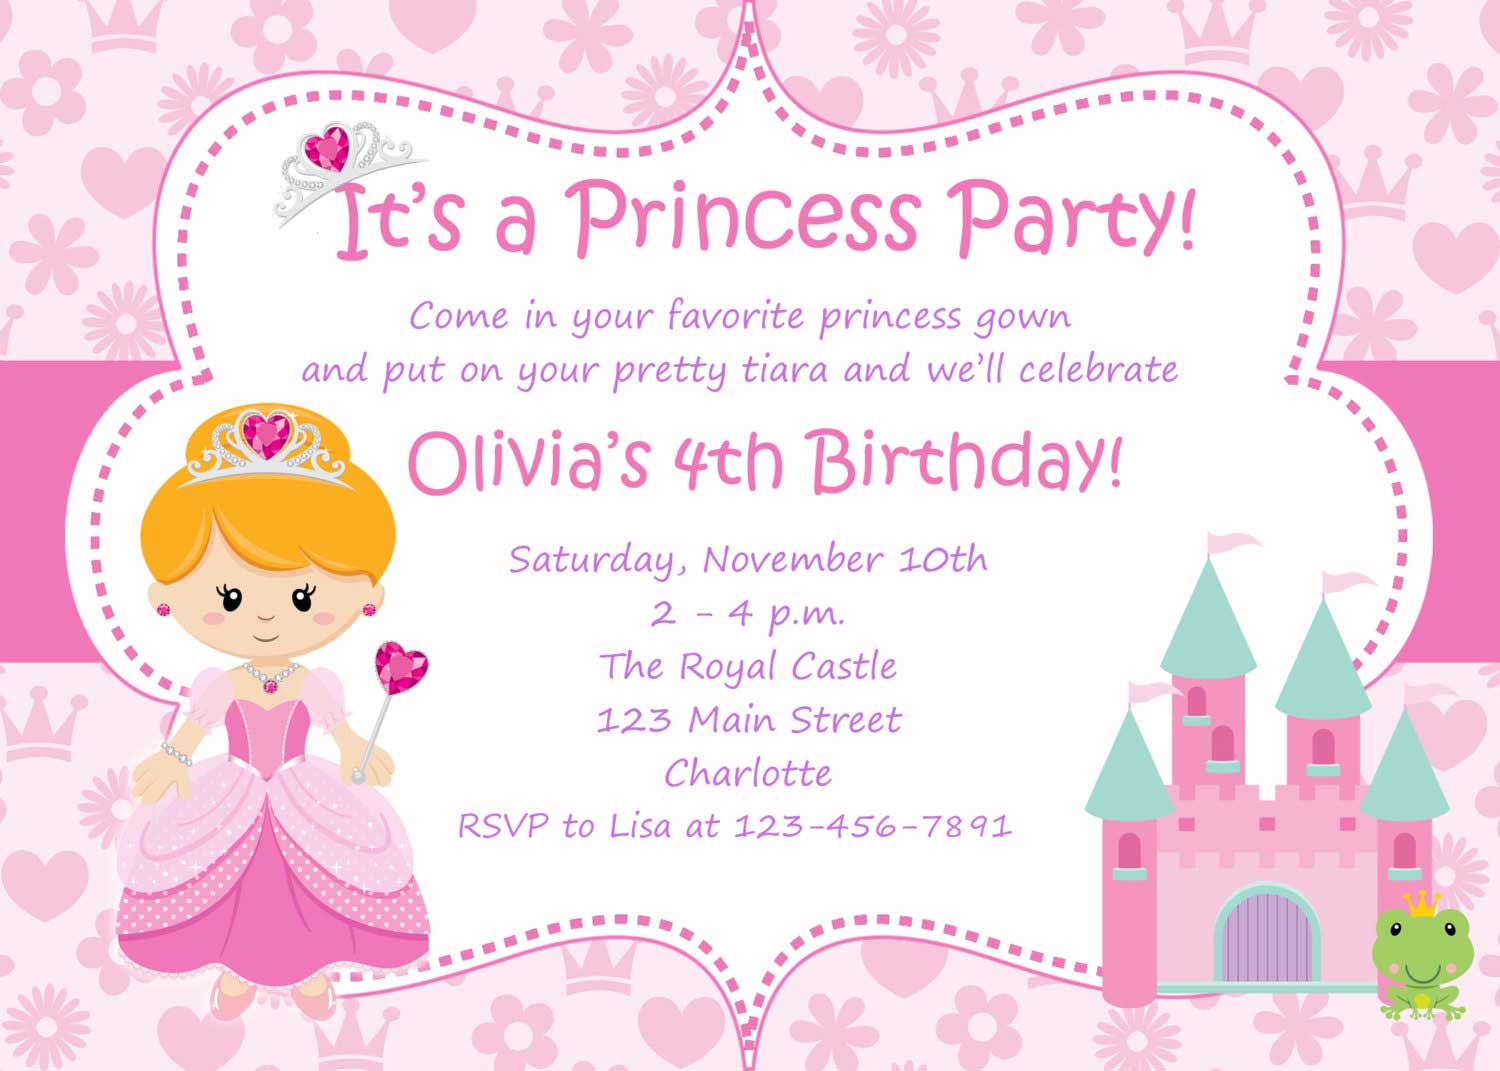 Birthday Invitation | Optabit Media